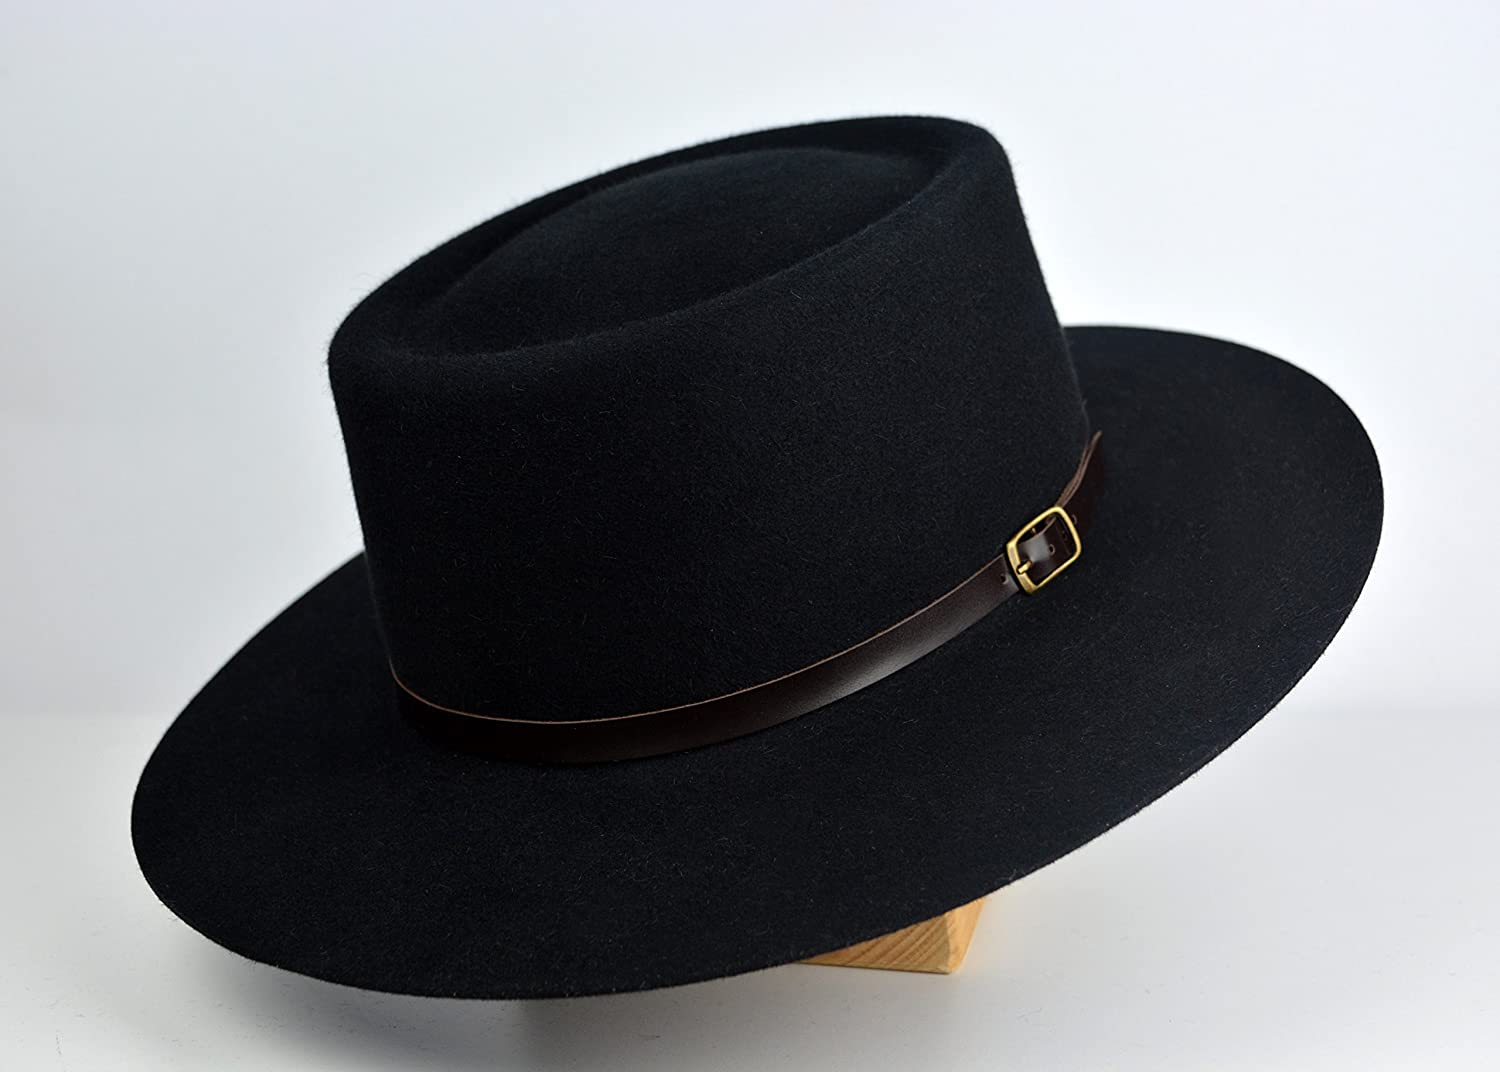 The Voodoo - Black Rabbit Fur Felt Vaquero Crown Bolero   Riding Hat - Extra -wide Brim - Men Women 55092a4e79b1